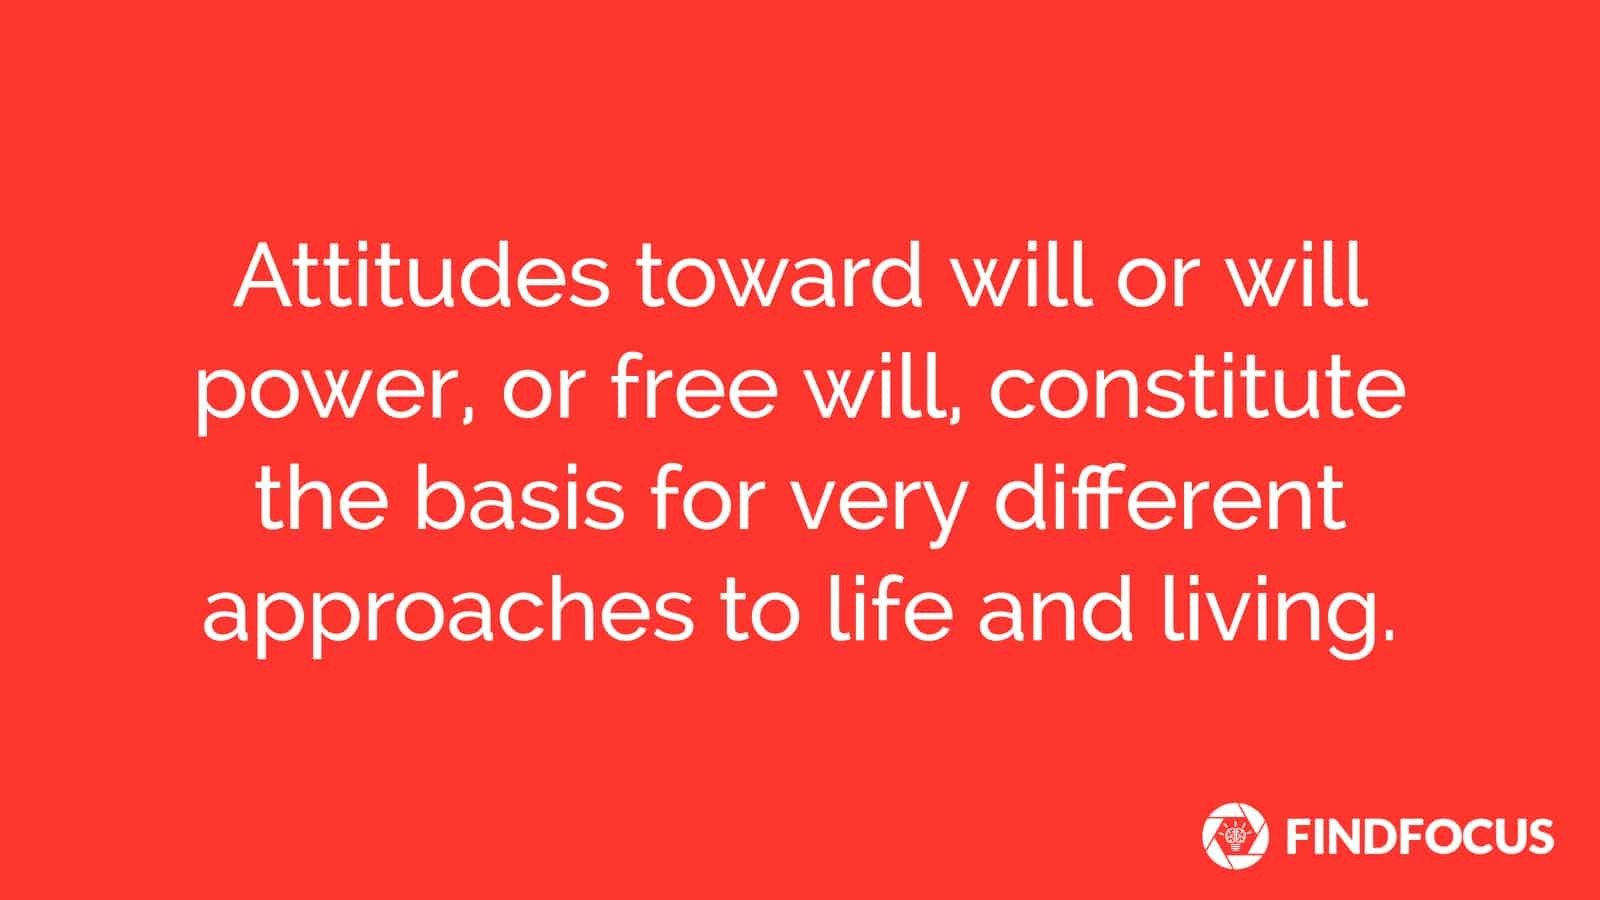 Attitudes toward will or will power, or free will, constitute the basis for very different approaches to life and living